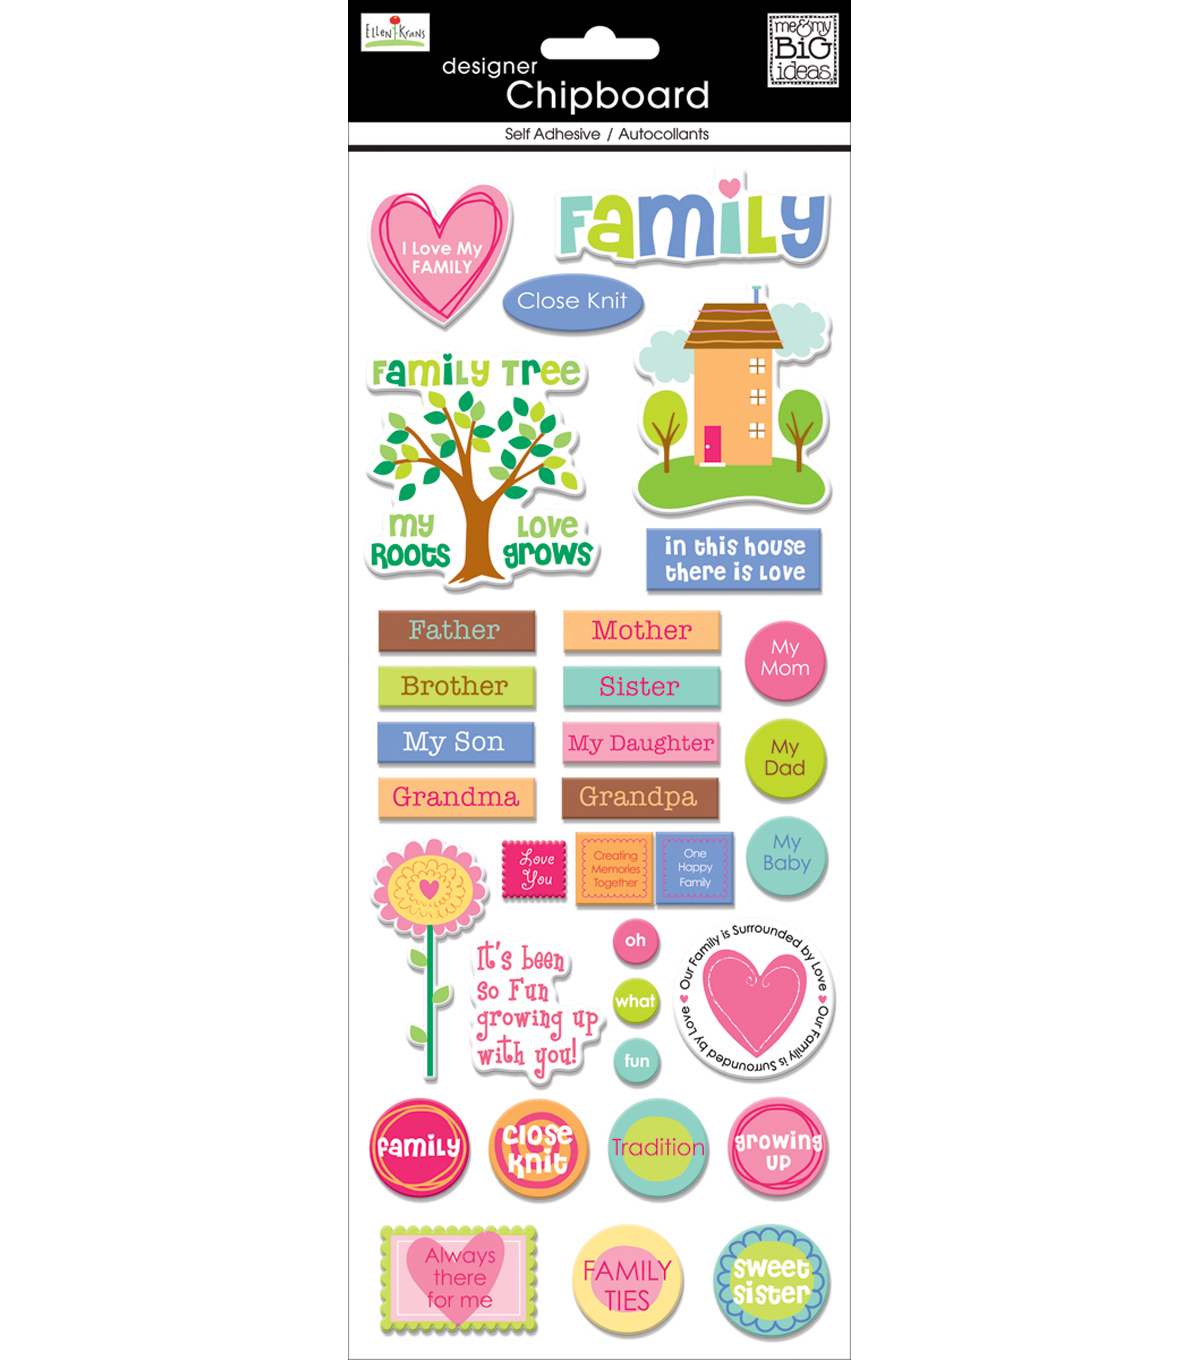 Me & My Big Ideas-Ellen Family Chipboard Sticker